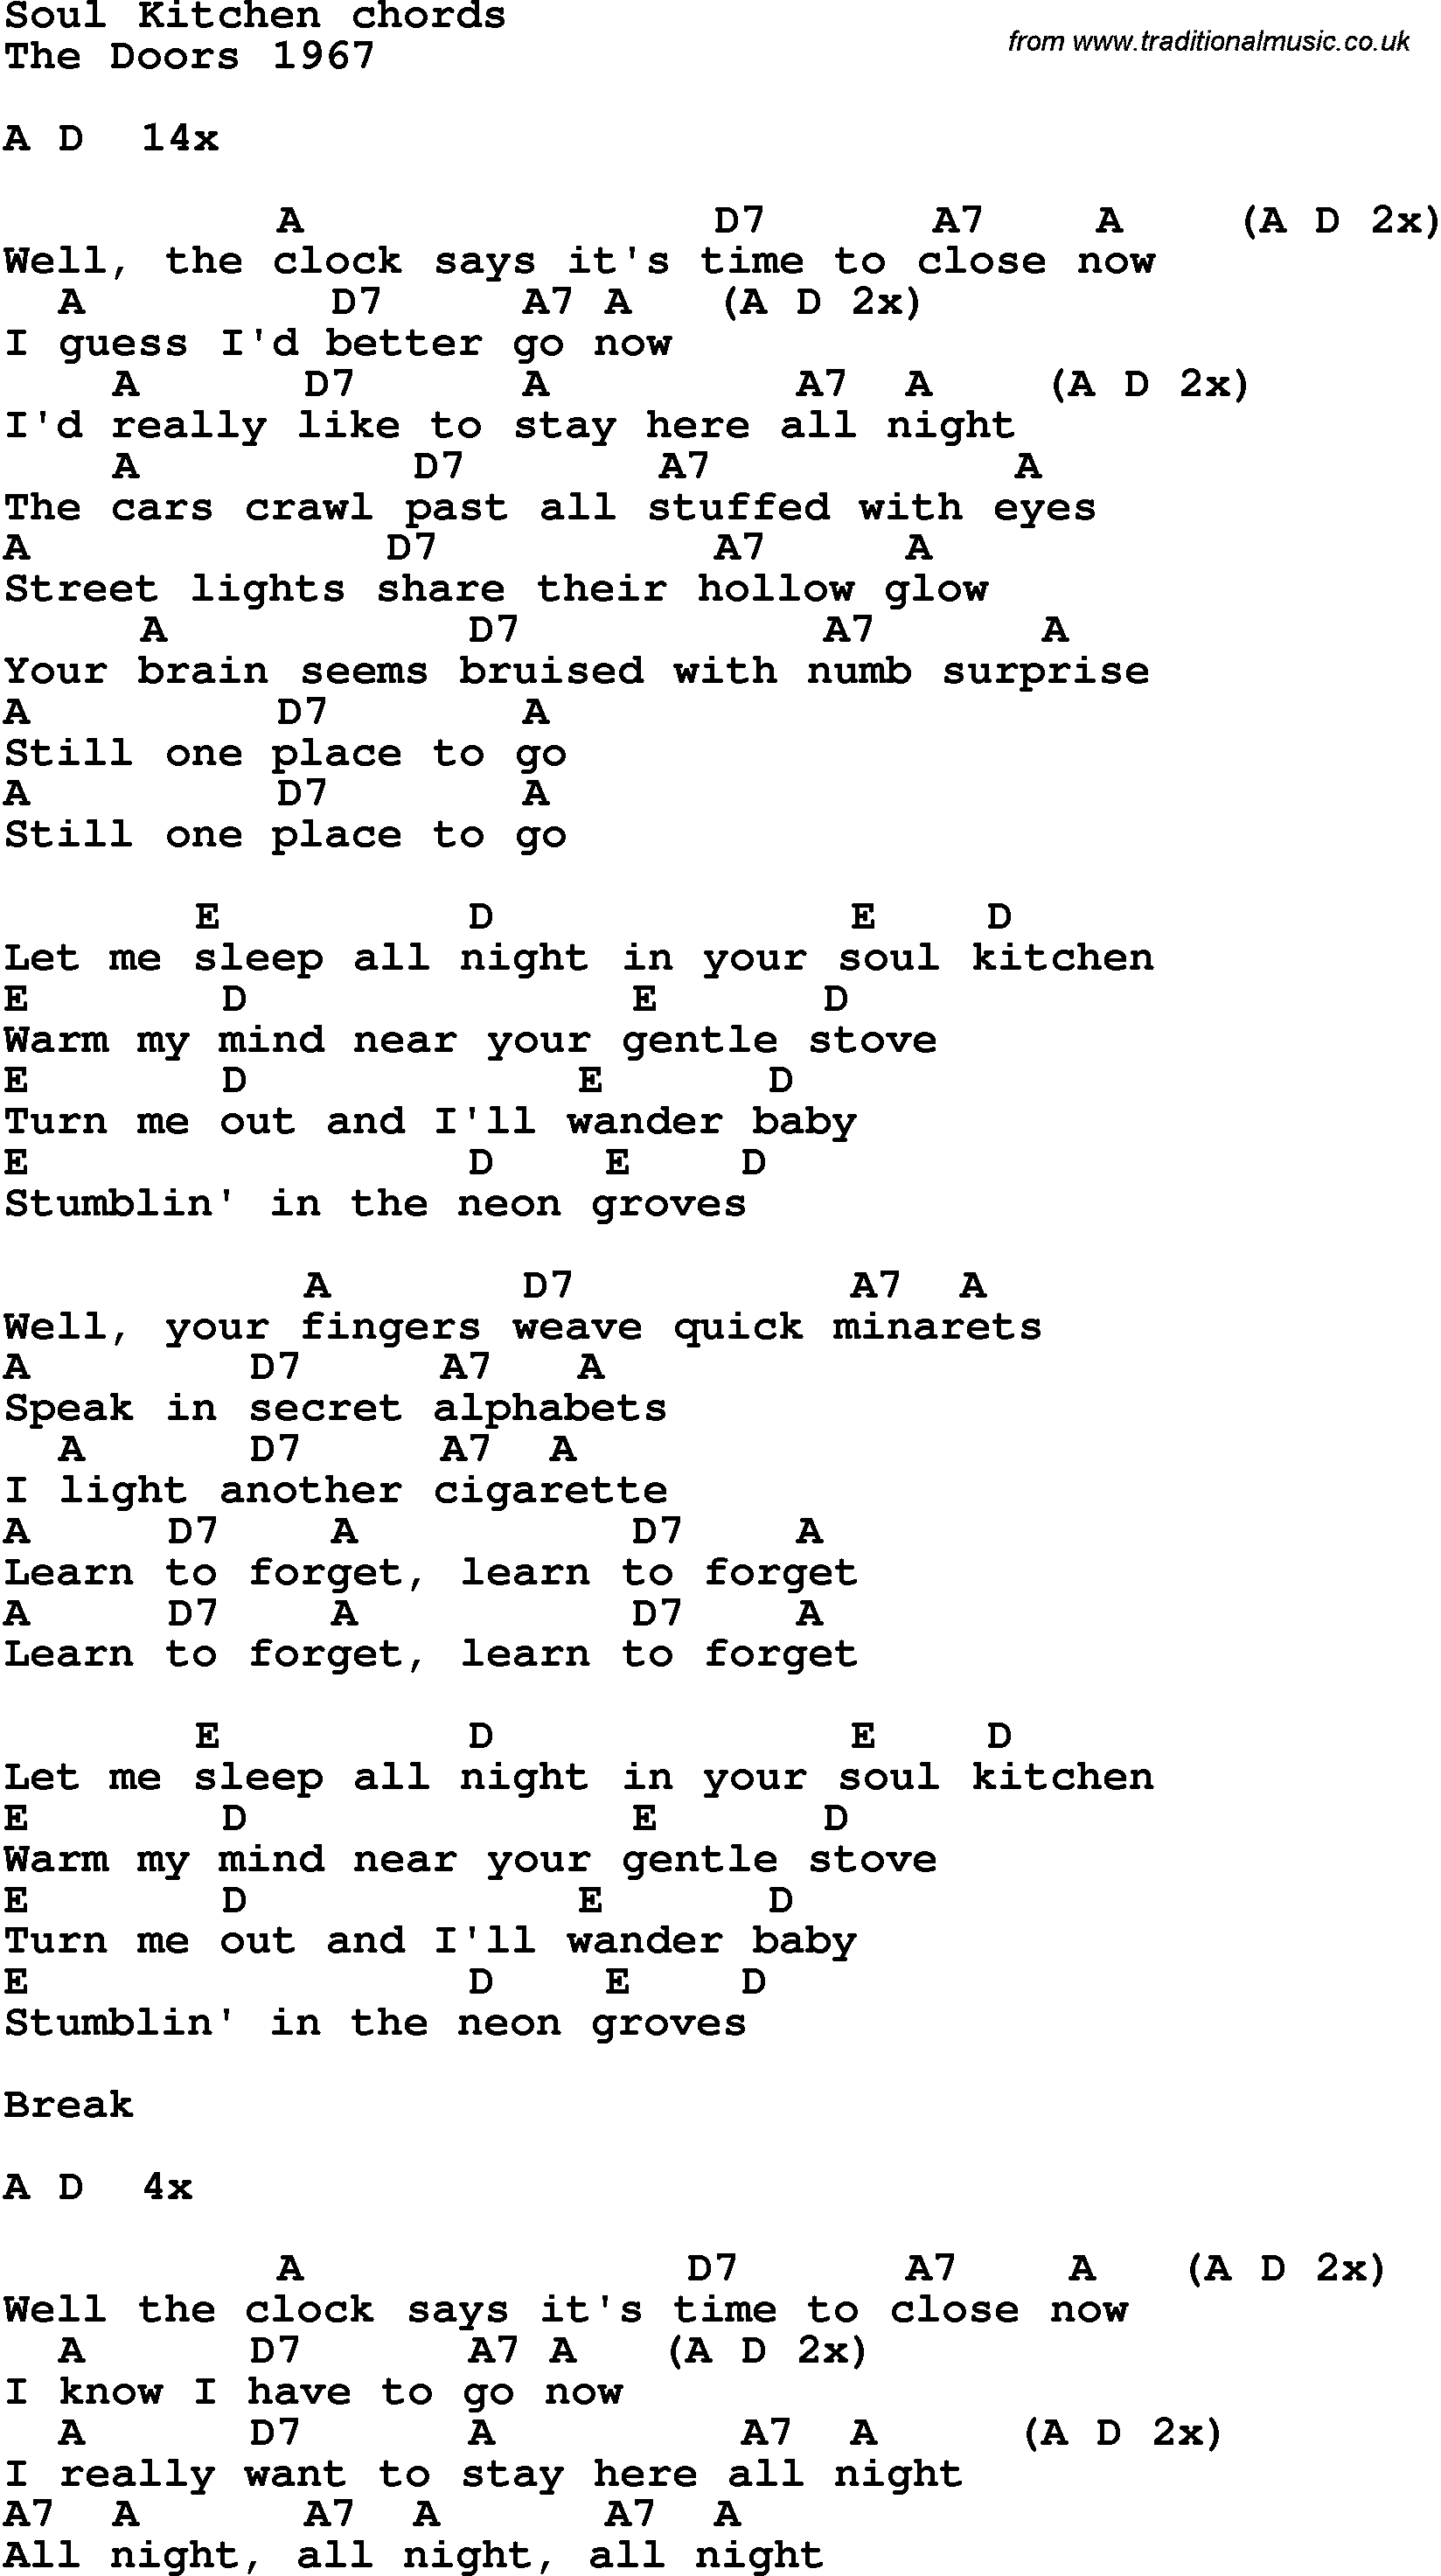 lyrics with guitar chords for Soul Kitchen